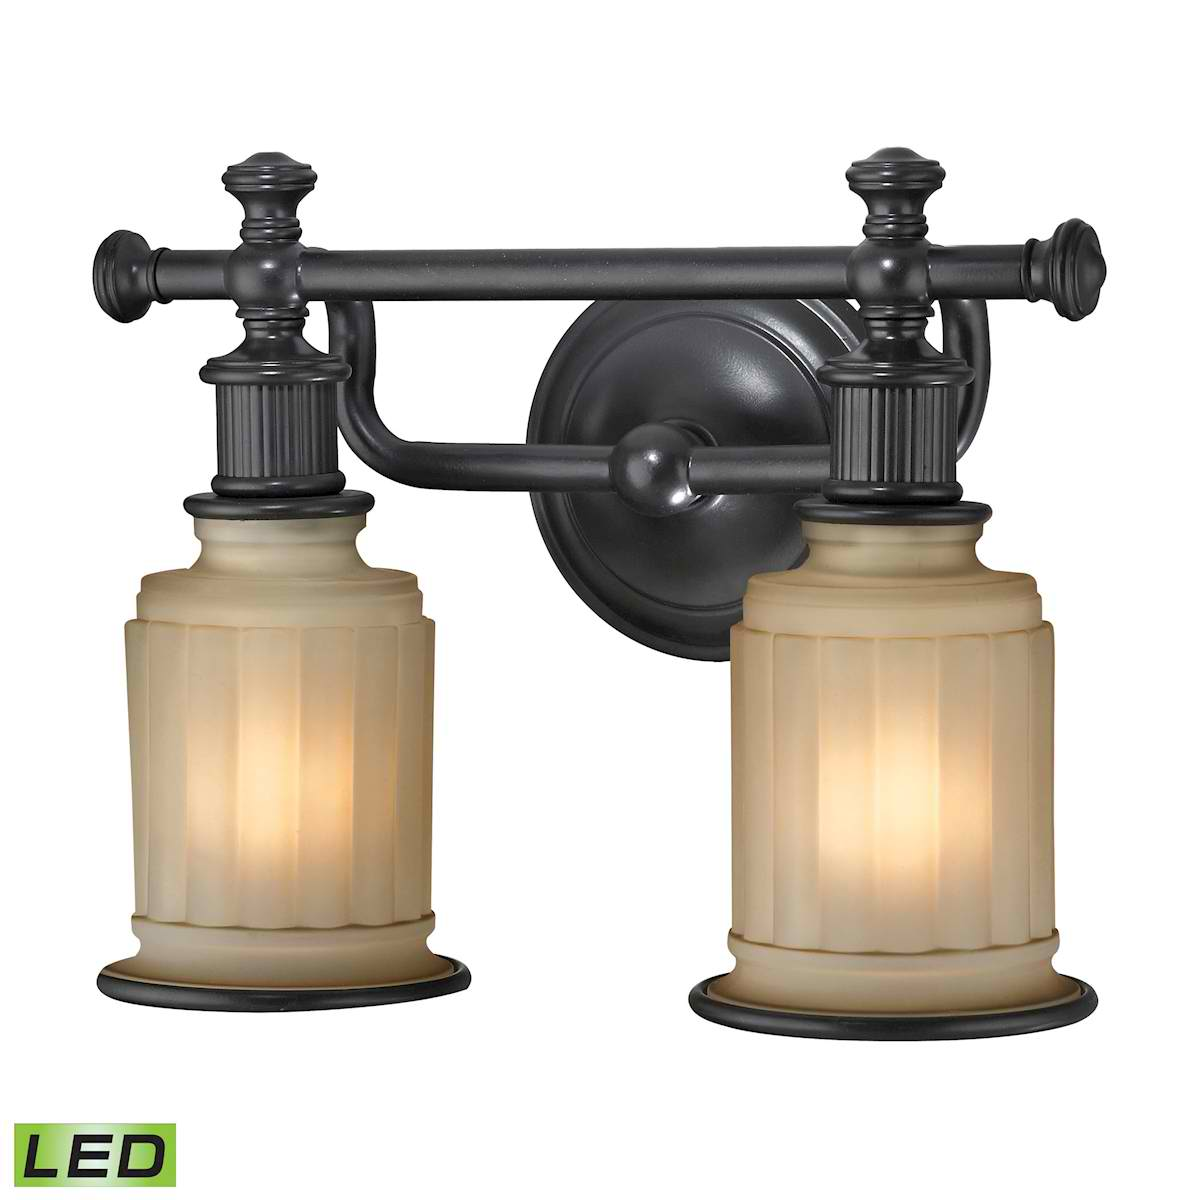 Acadia Collection 2 Light Bath in Oil Rubbed Bronze - LED, 800 Lumens (1600 Lumens Total) with Full